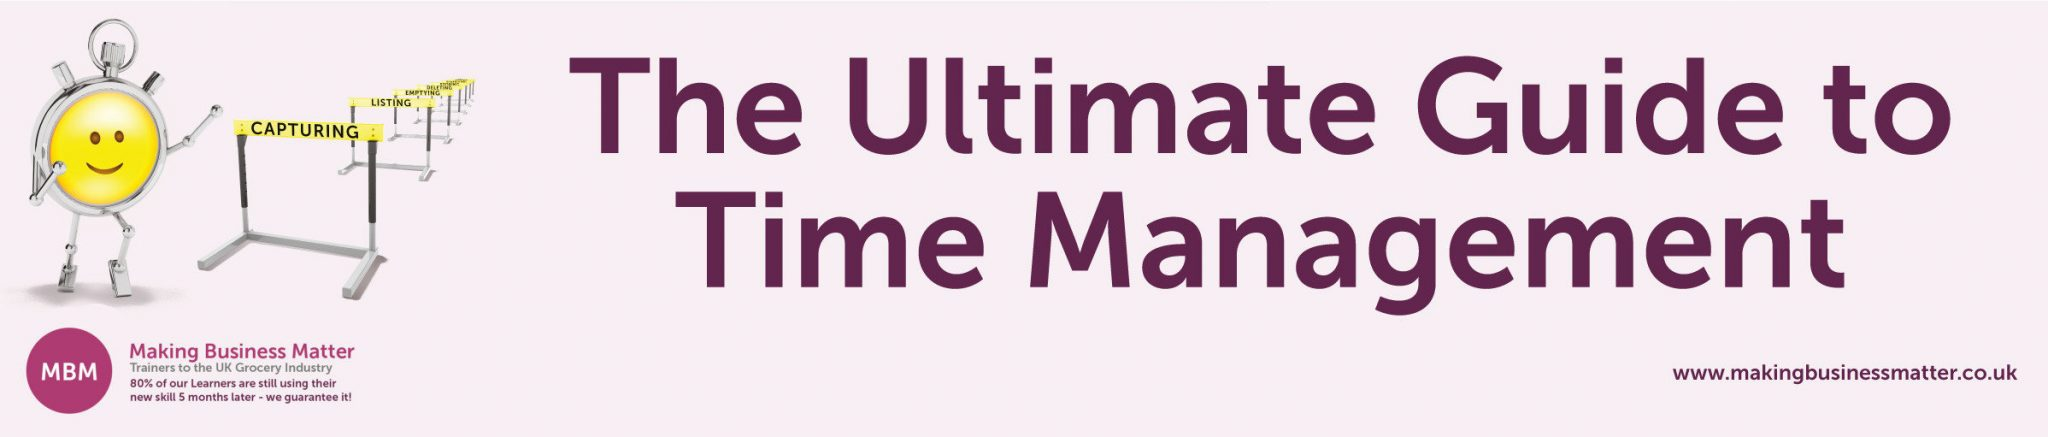 Ultimate Guide Image - Time Management Skills